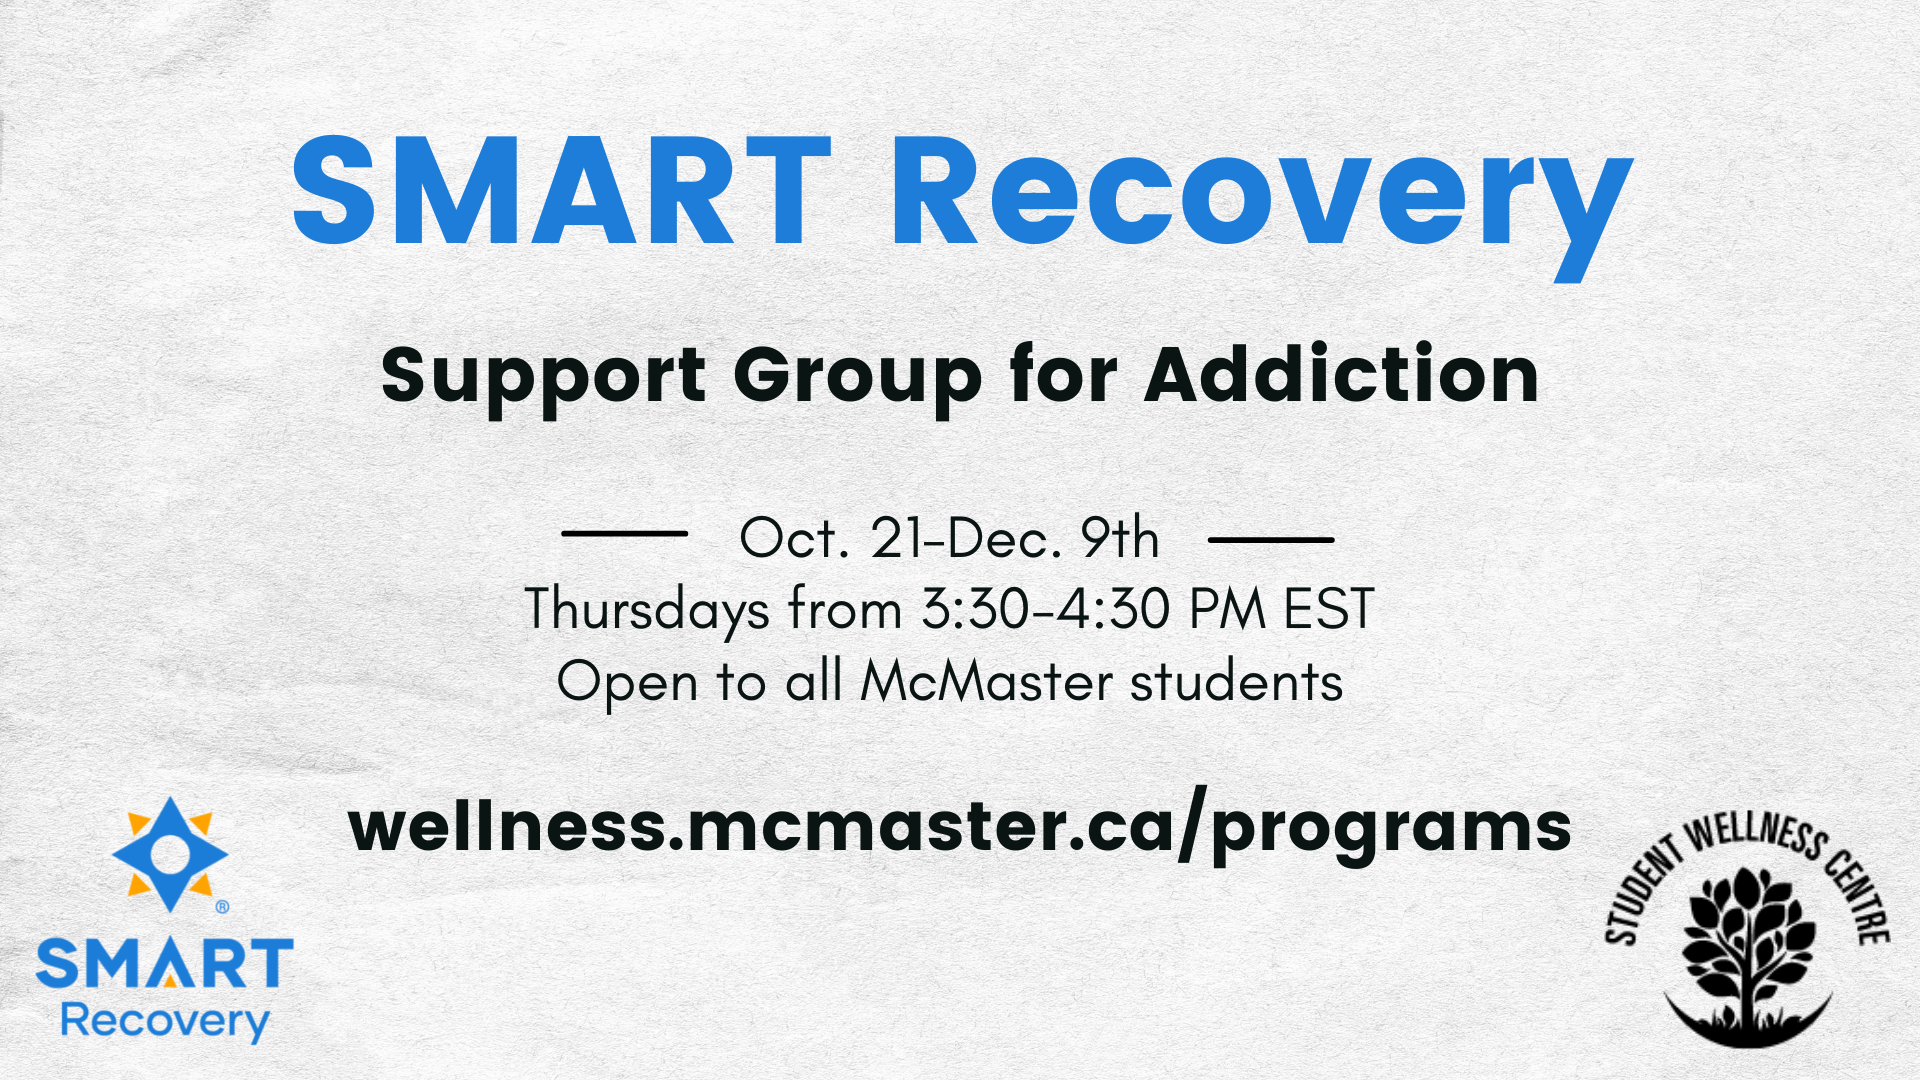 SMART Recovery - support group for addiction